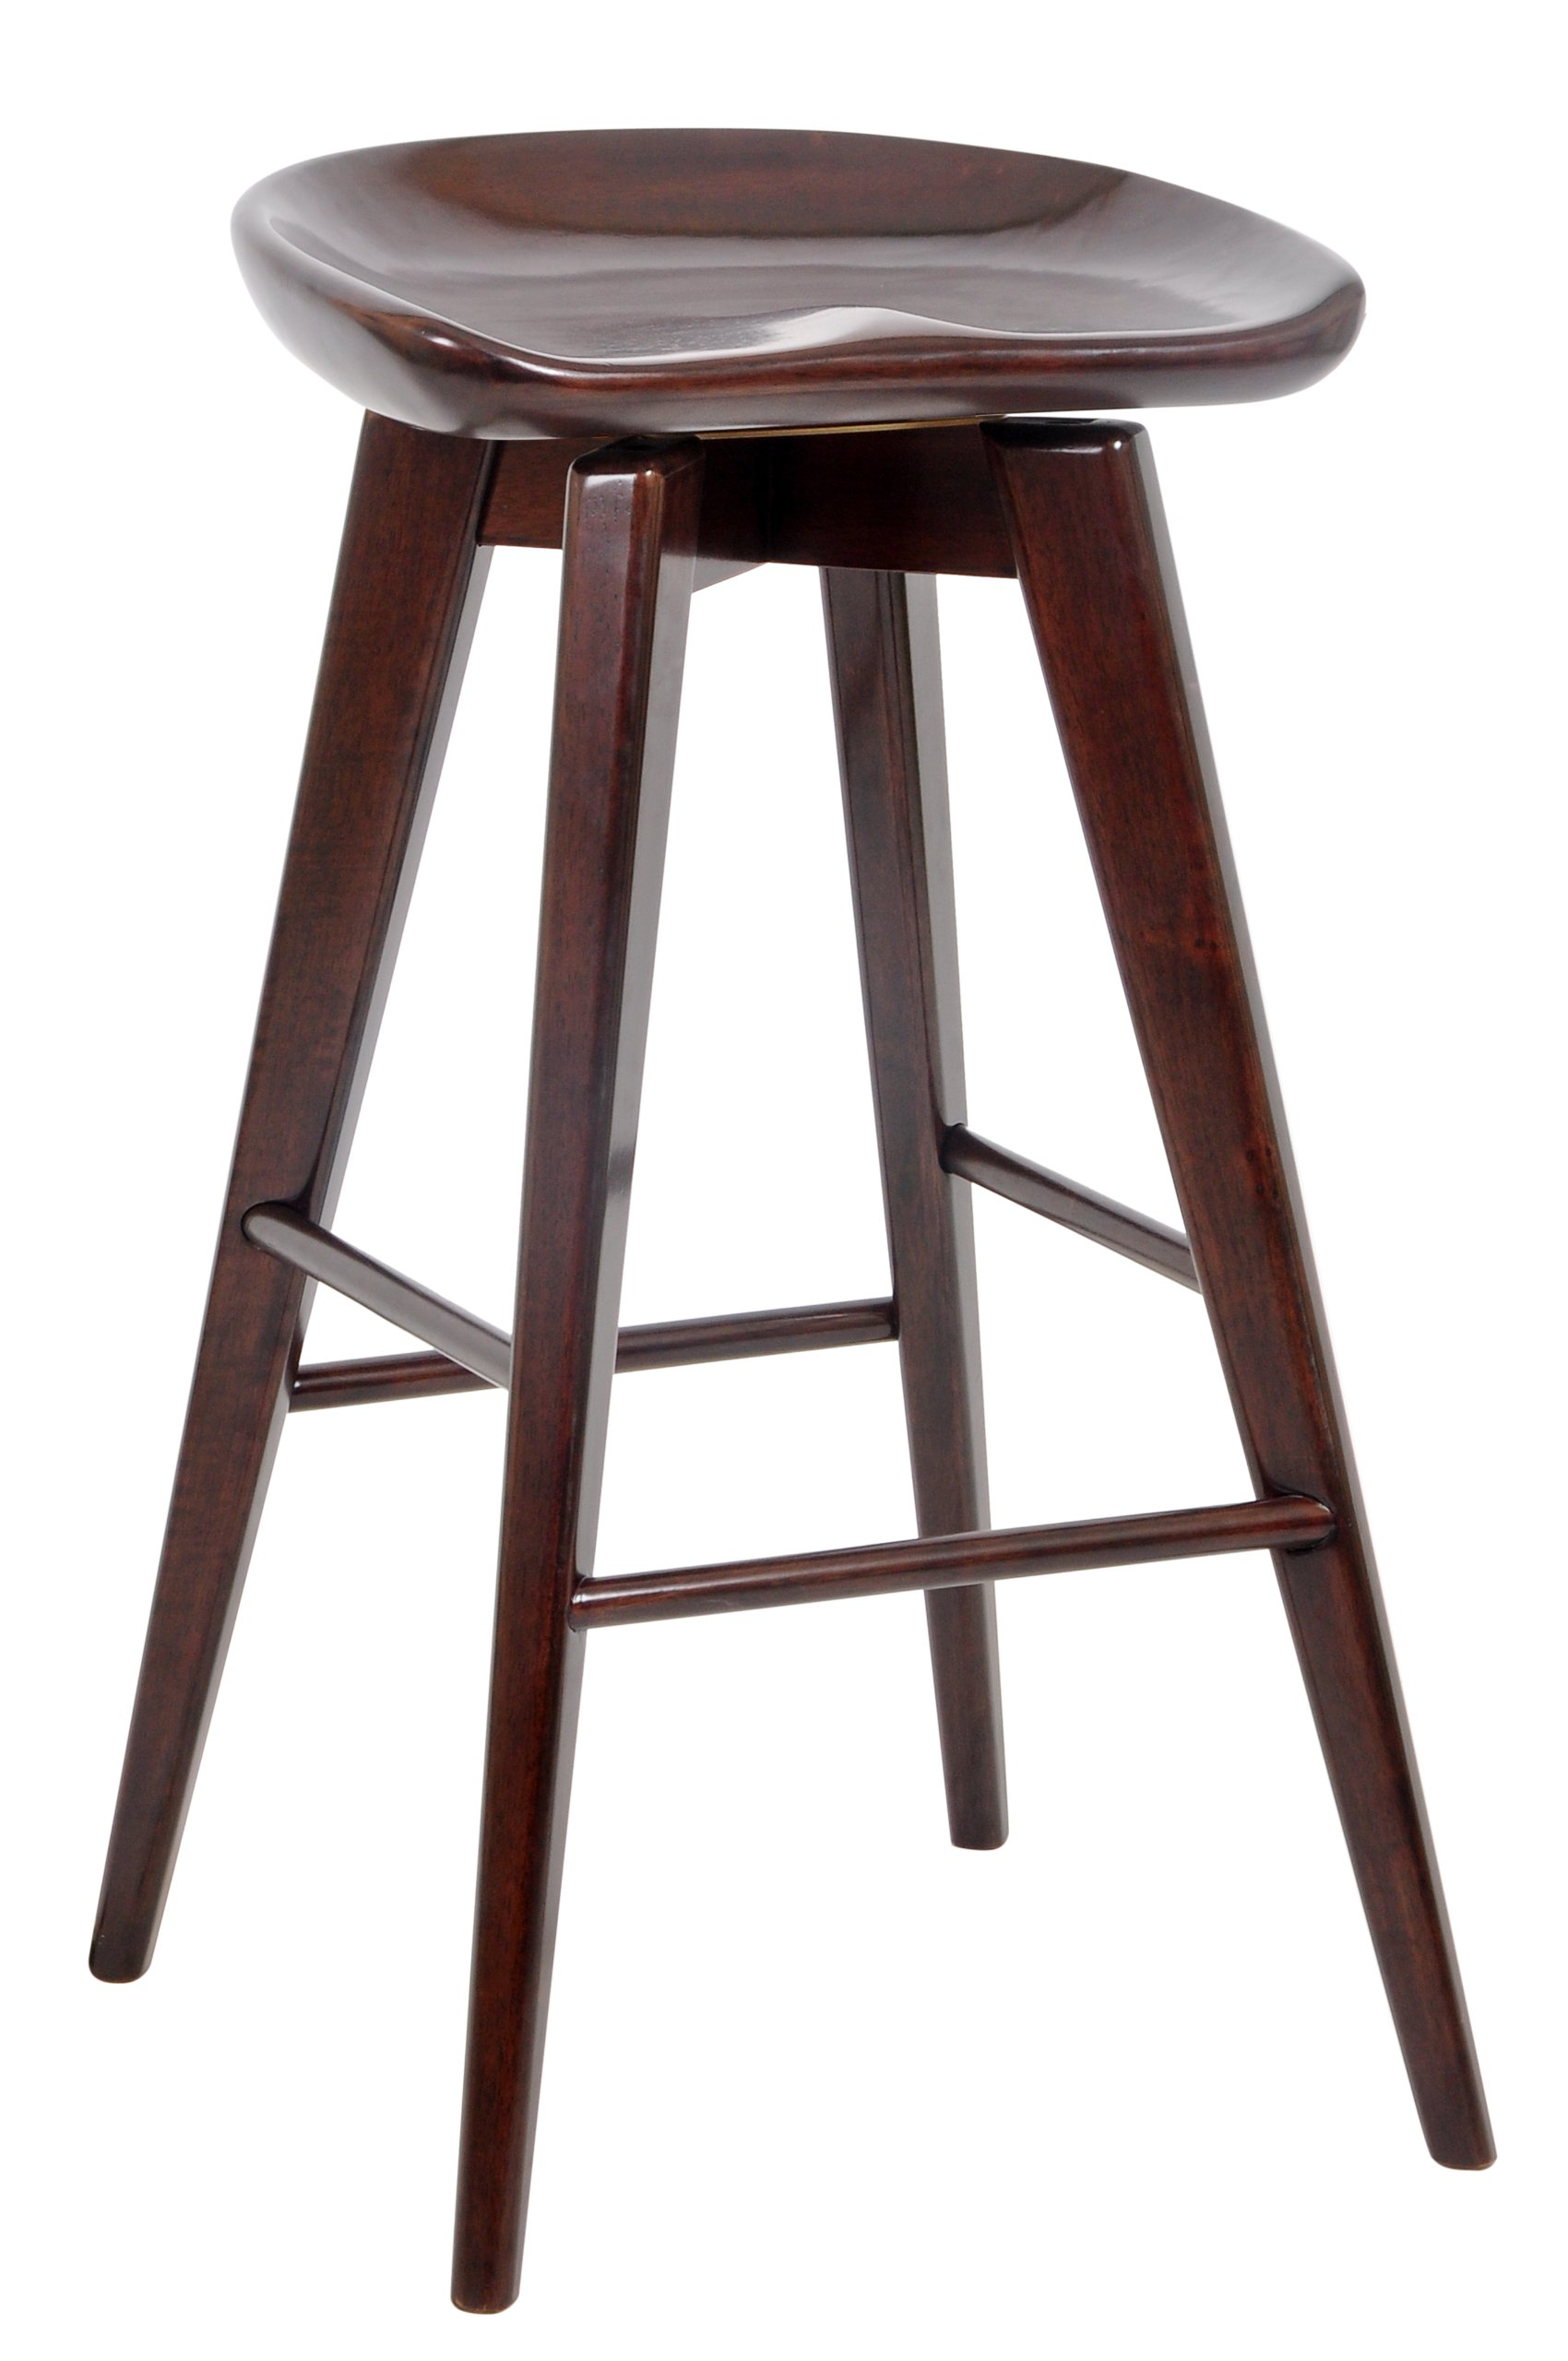 Boraam 54129 Bali Bar Height Swivel Stool, 29-Inch, Cappuccino